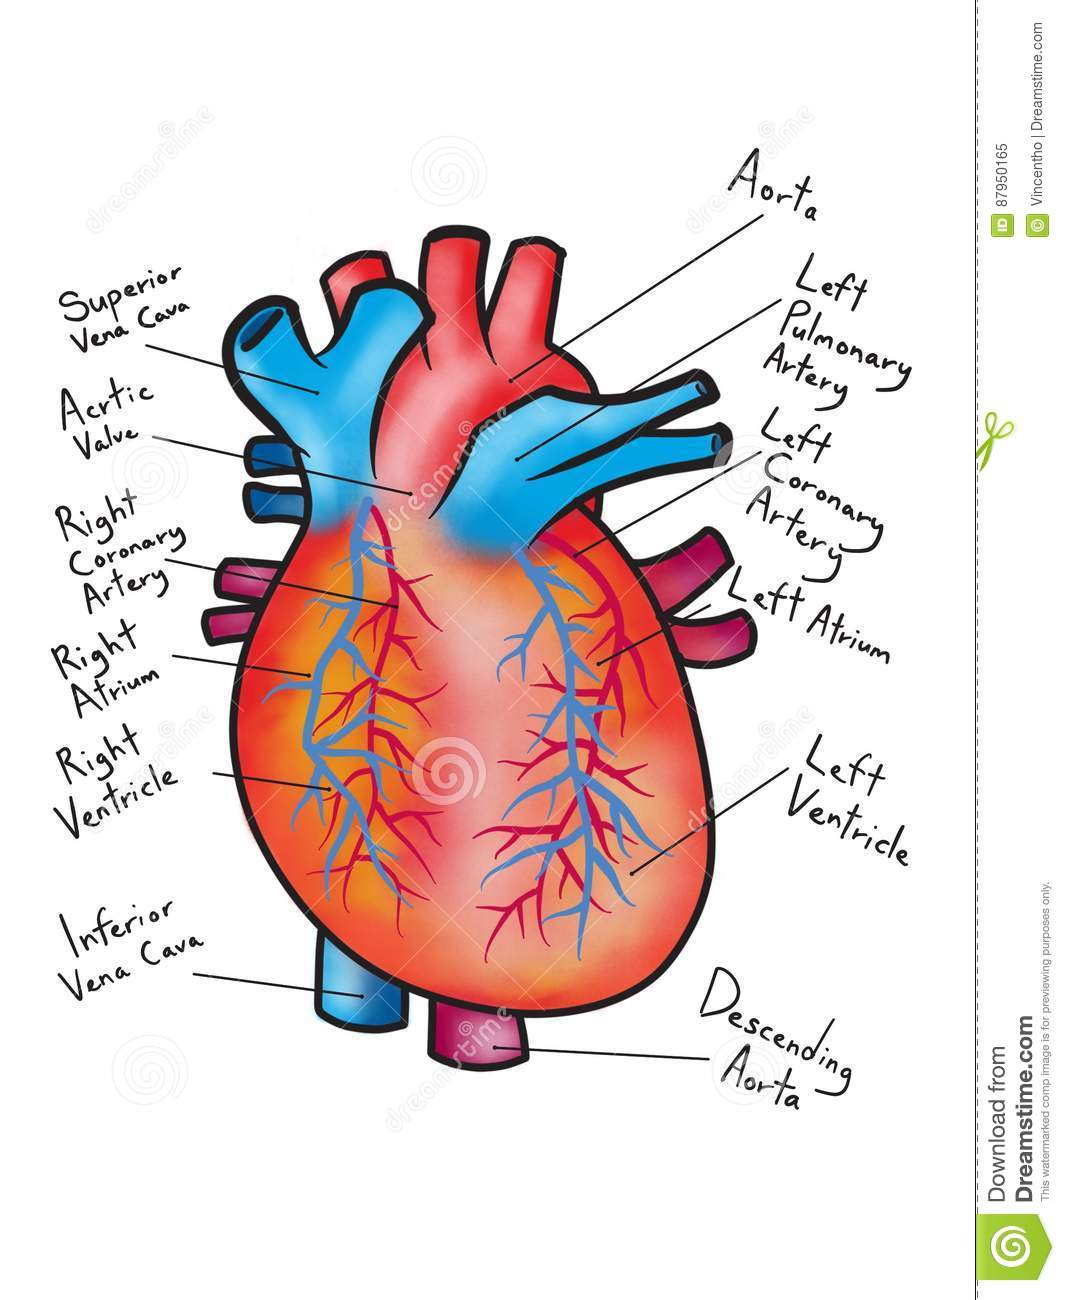 drawing of the human heart diagram illustration stock photo, Muscles